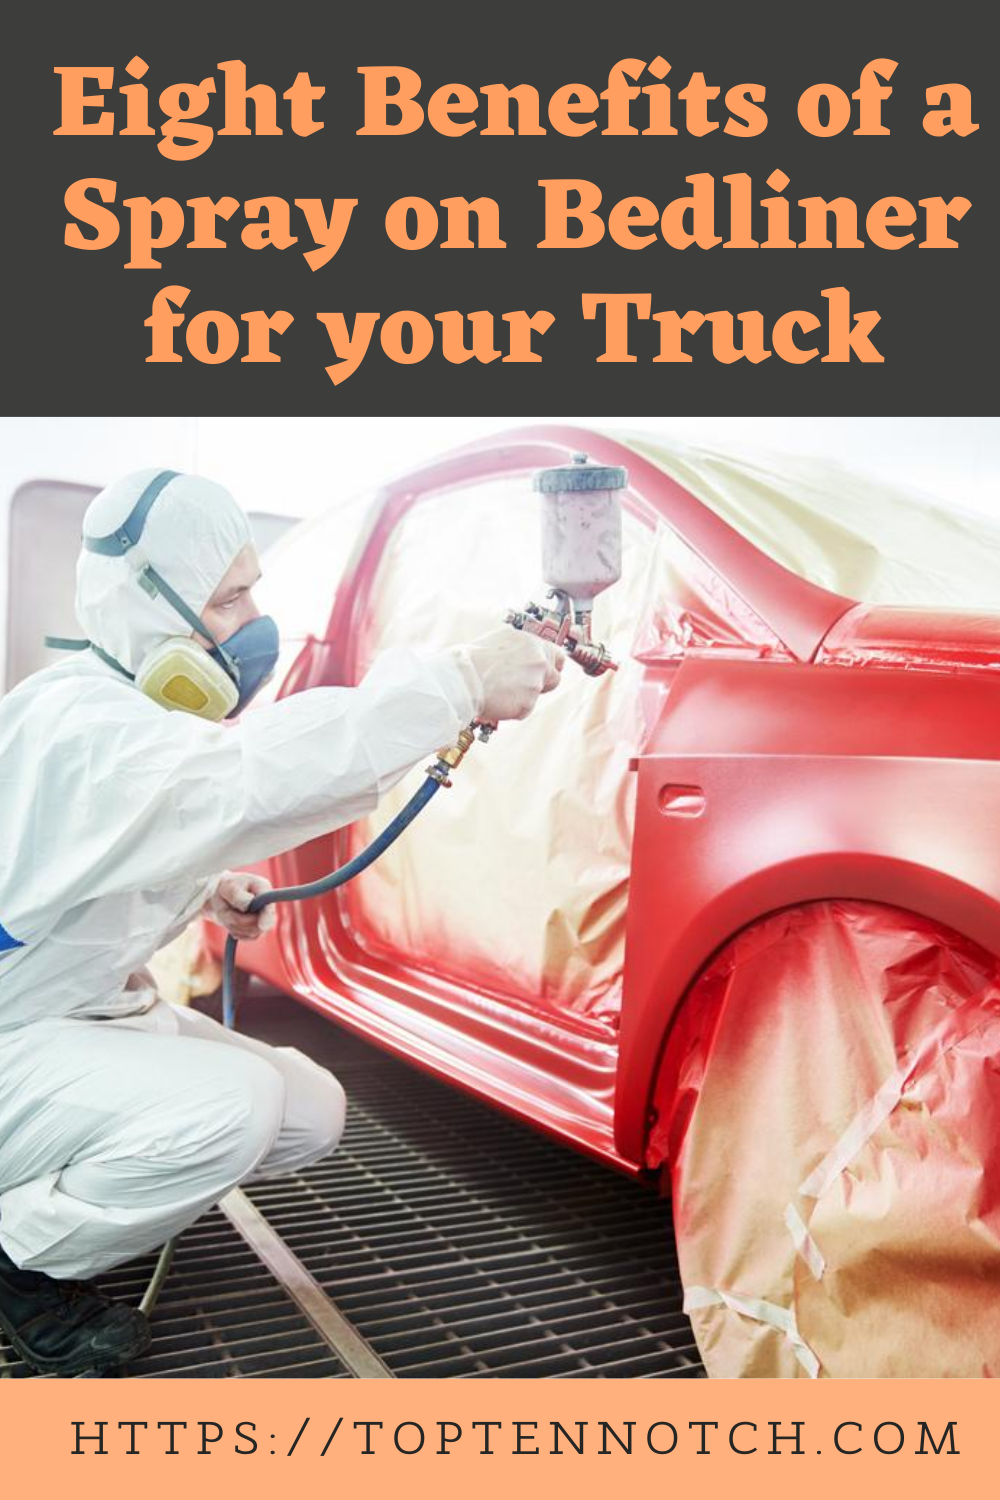 Eight Benefits of a Sprayon Bedliner for your Truck in